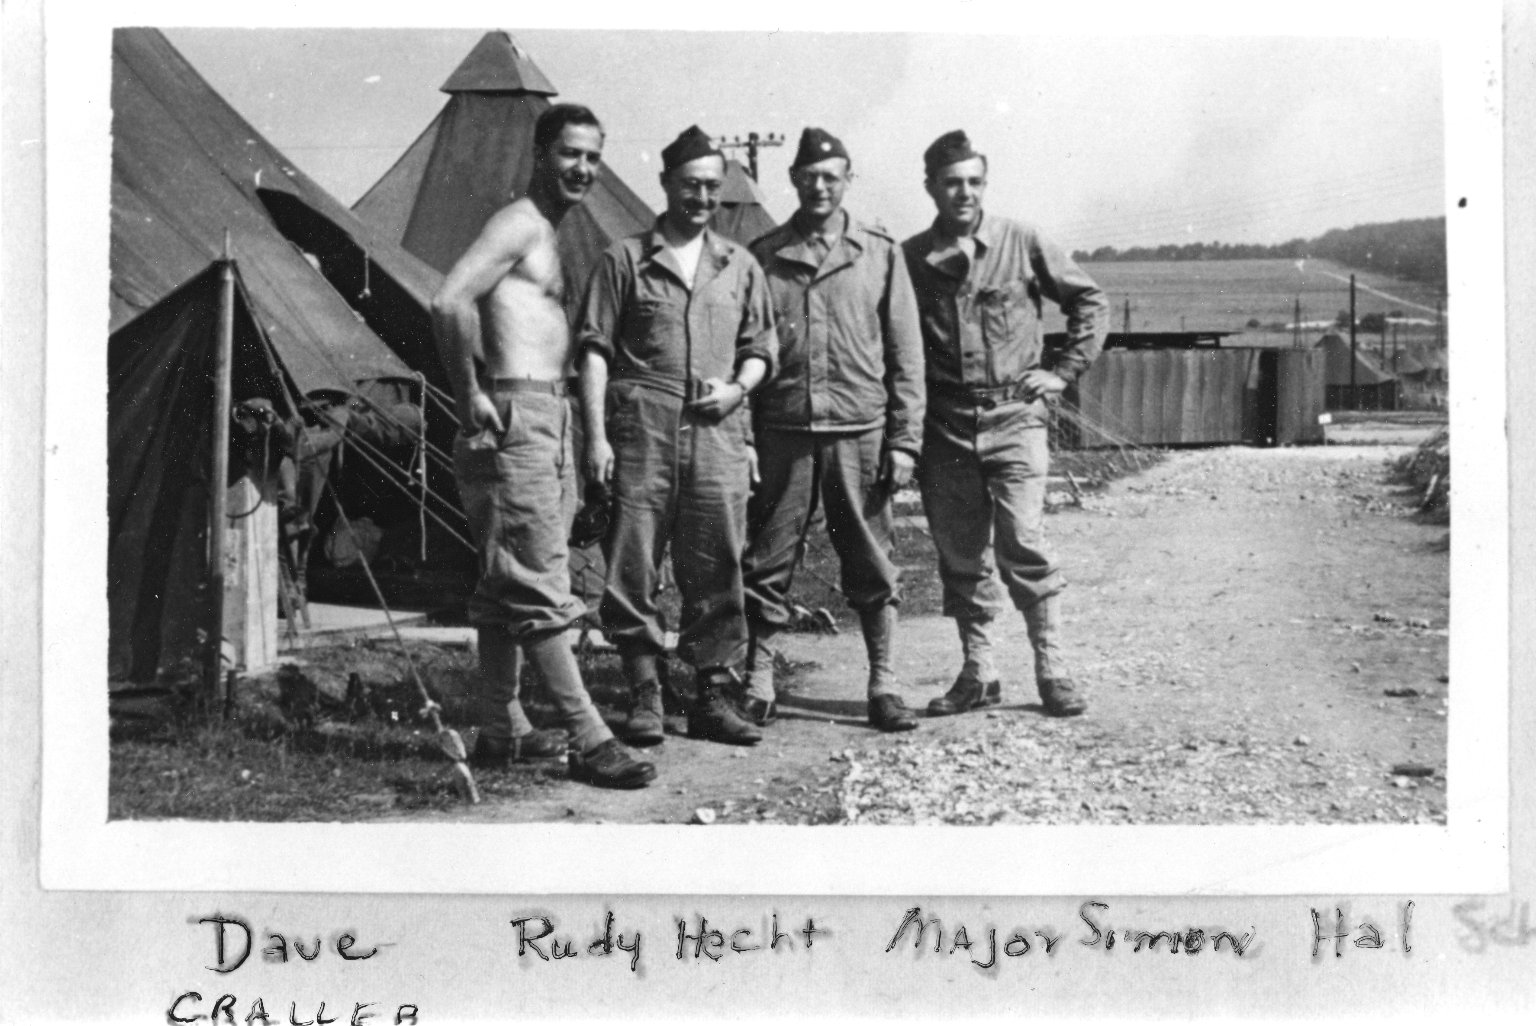 Tidworth, Dave Graller, Rudy Hecht, Major Simon, Hal Shirro (Drs.)